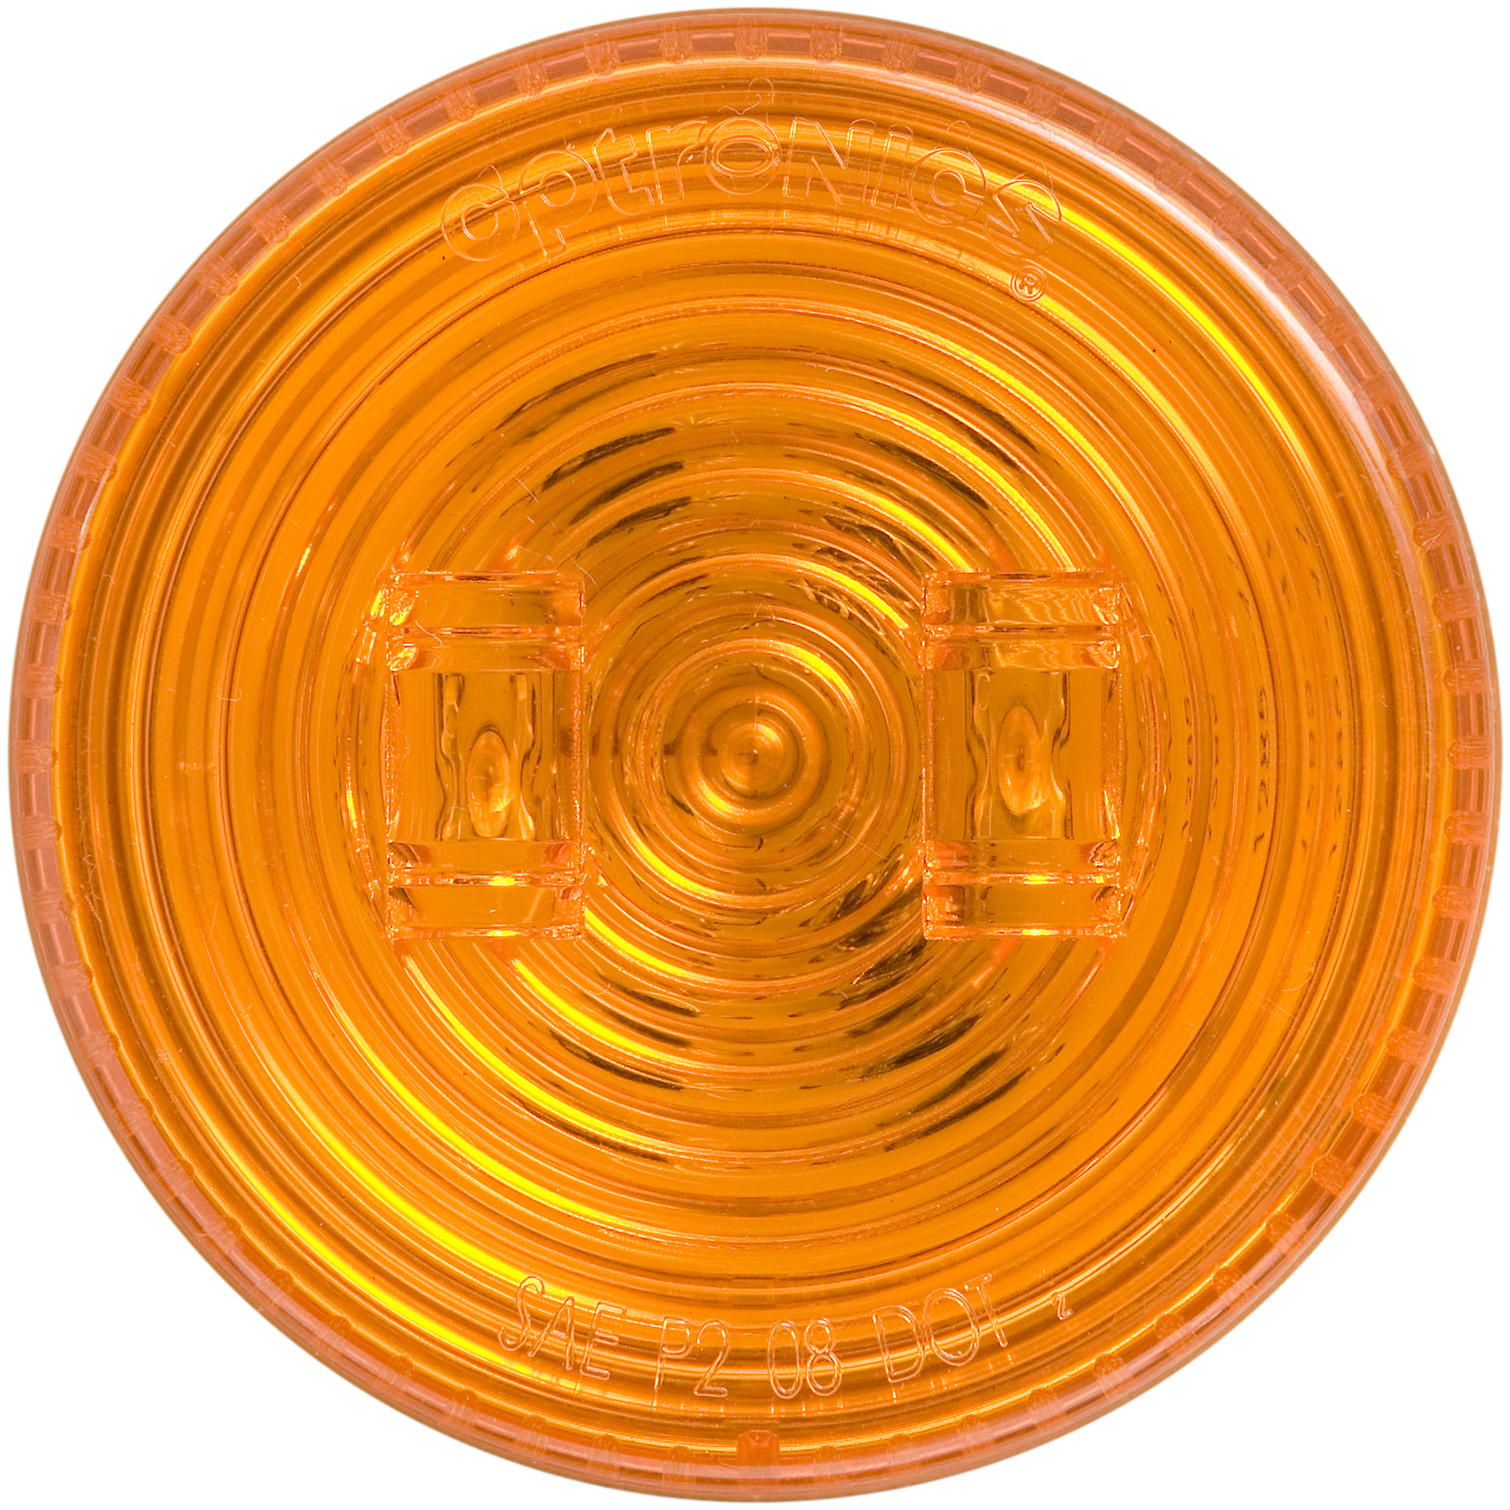 MCL527AB_OPTRONICS MCL527AB Yellow 2.5 in. Marker Clearance Light for Grommet Mount